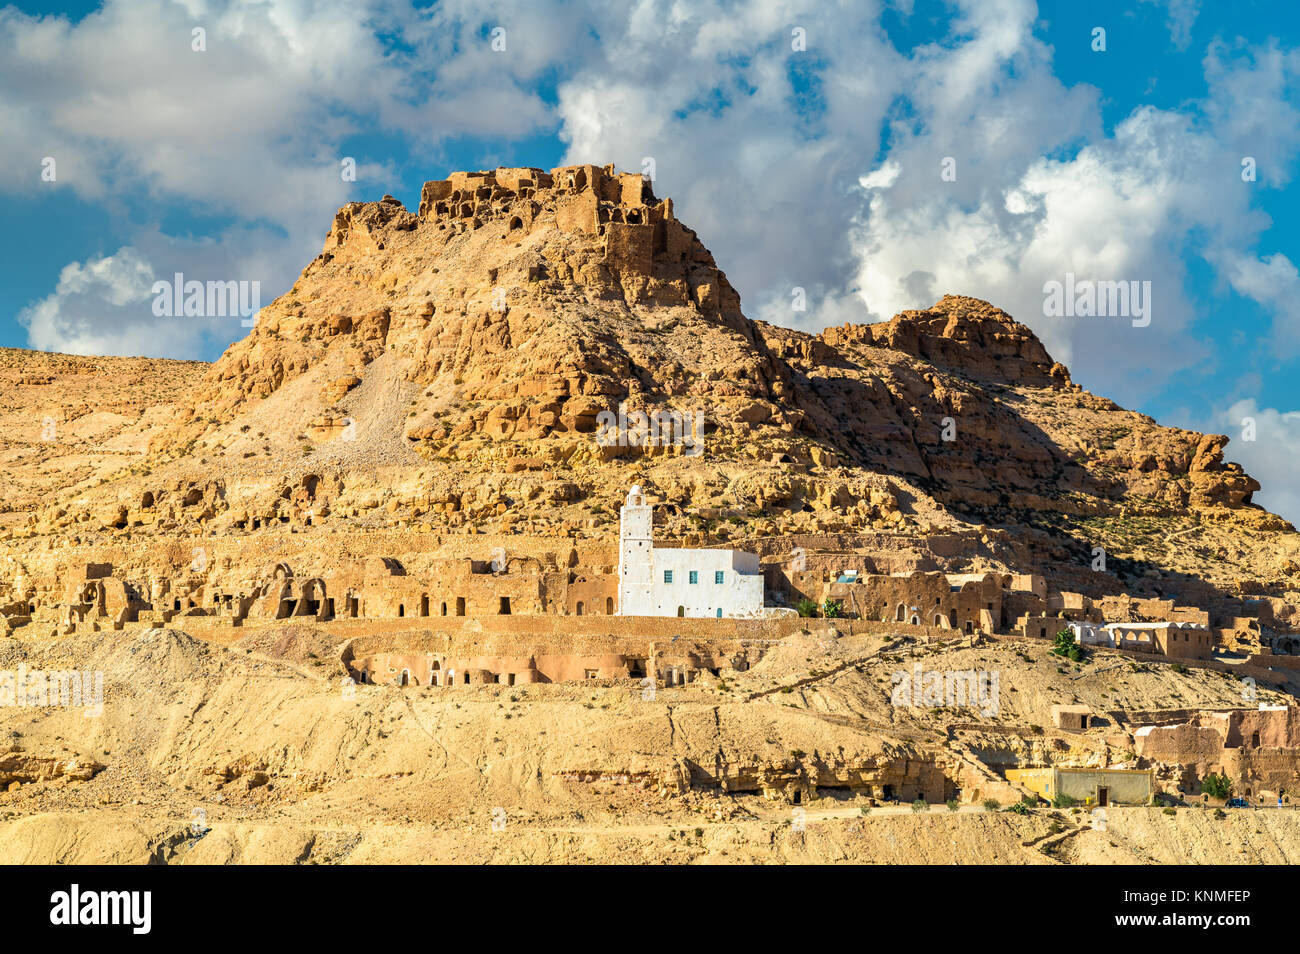 View of Doiret, a hilltop-located berber village in South Tunisia Stock Photo